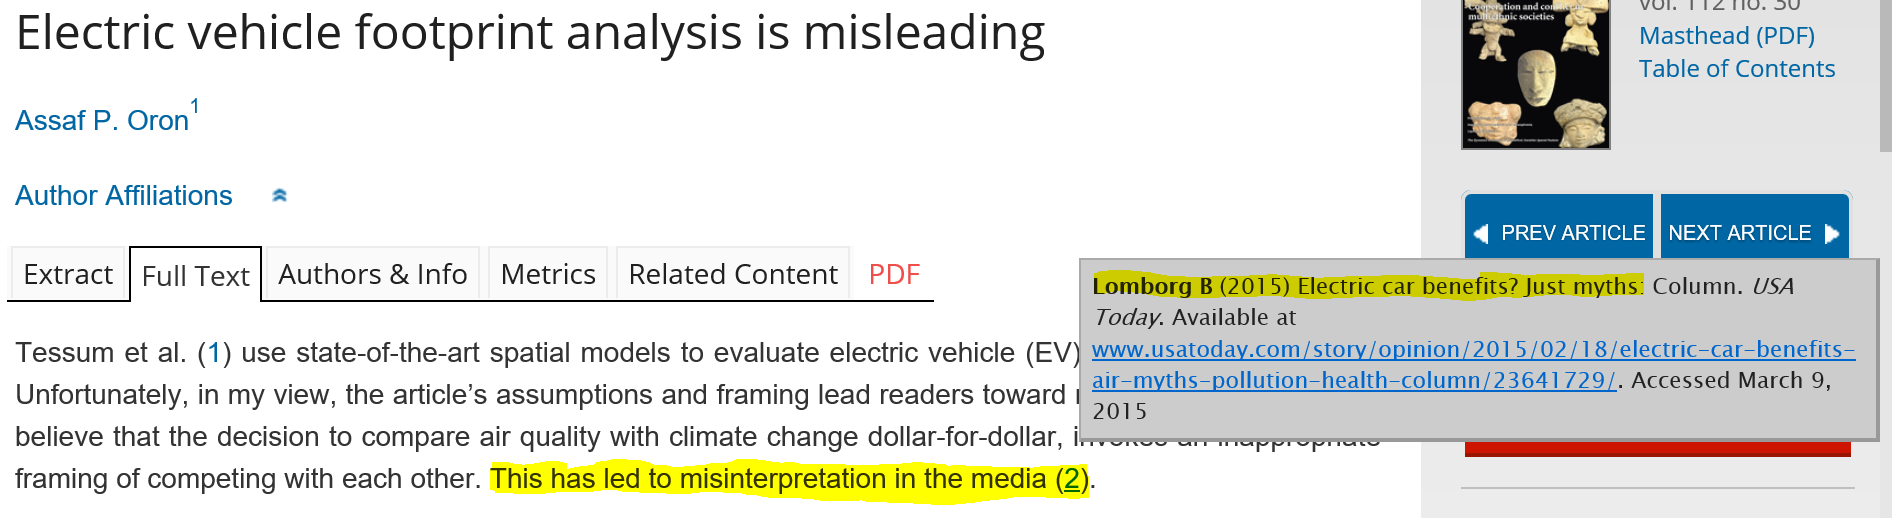 Figure 13: Assaf P. Oron points out that the findings of the study has been misinterpreted in the media by Bjorn Lomborg.